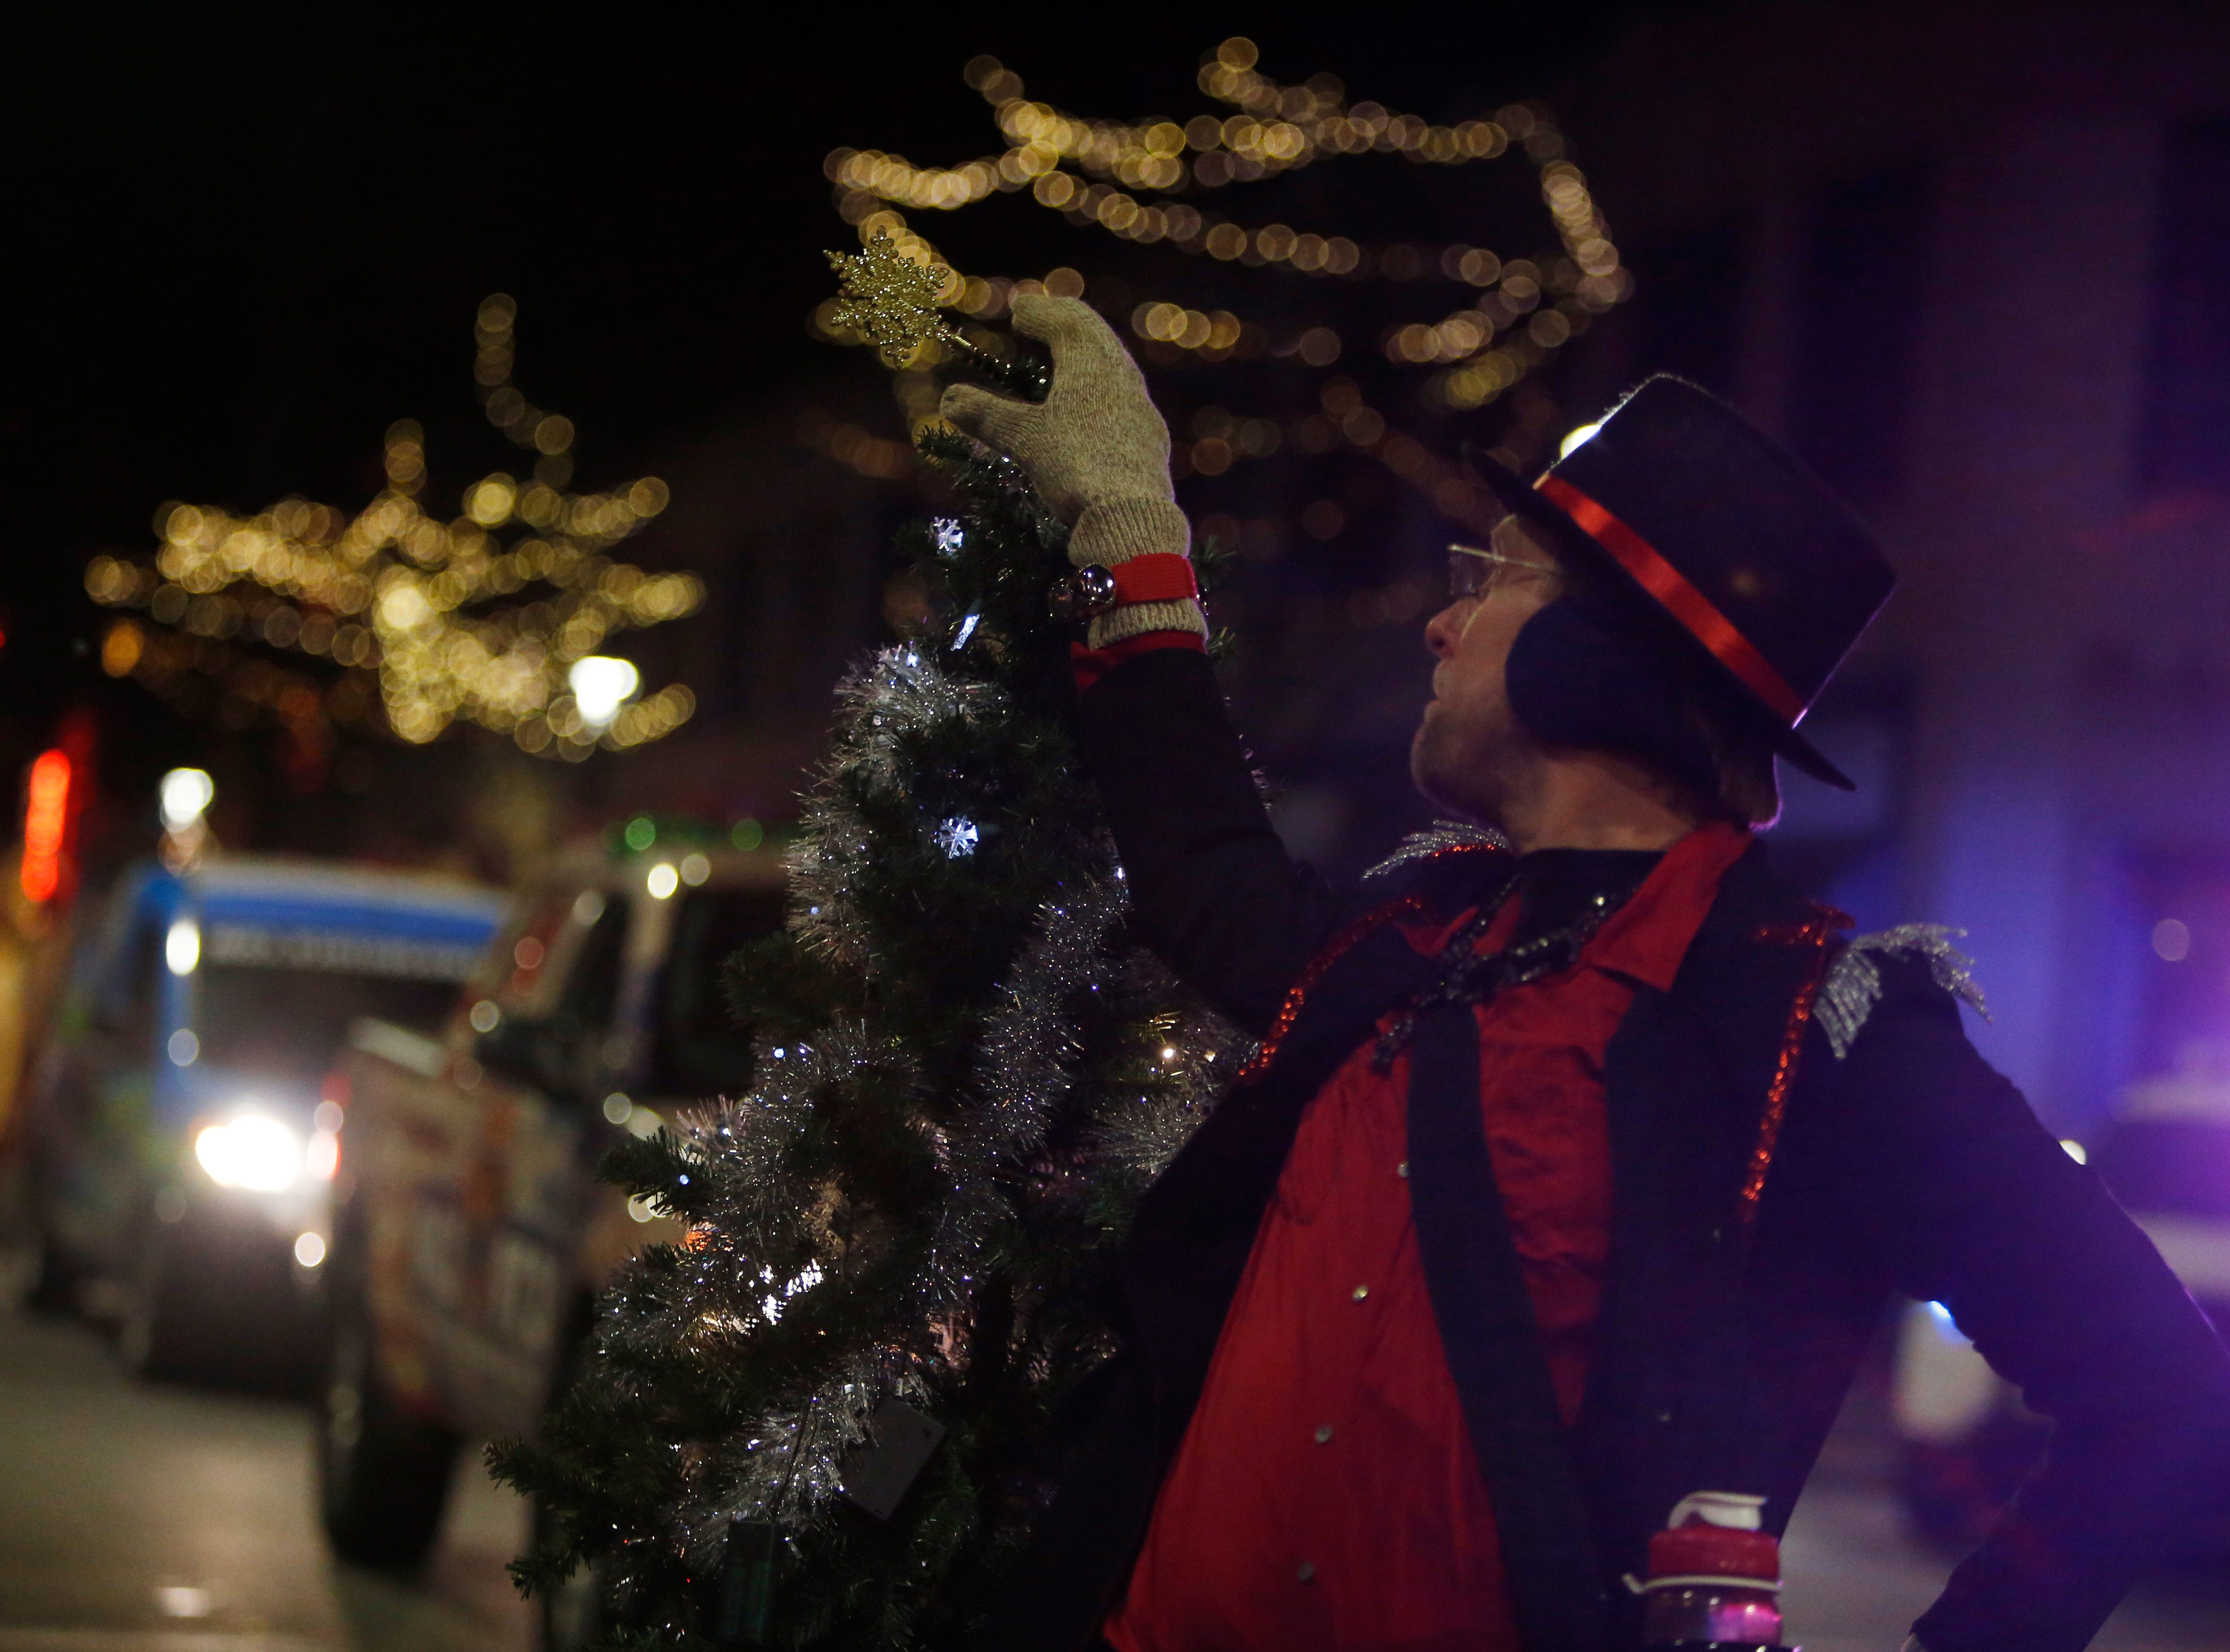 Frank Richards from of Fats in the Cats Bicycle Club adjusts the top to his bicycle's Christmas Tree during the Celebration of Lights Parade in the City of Poughkeepsie on November 30, 2018.